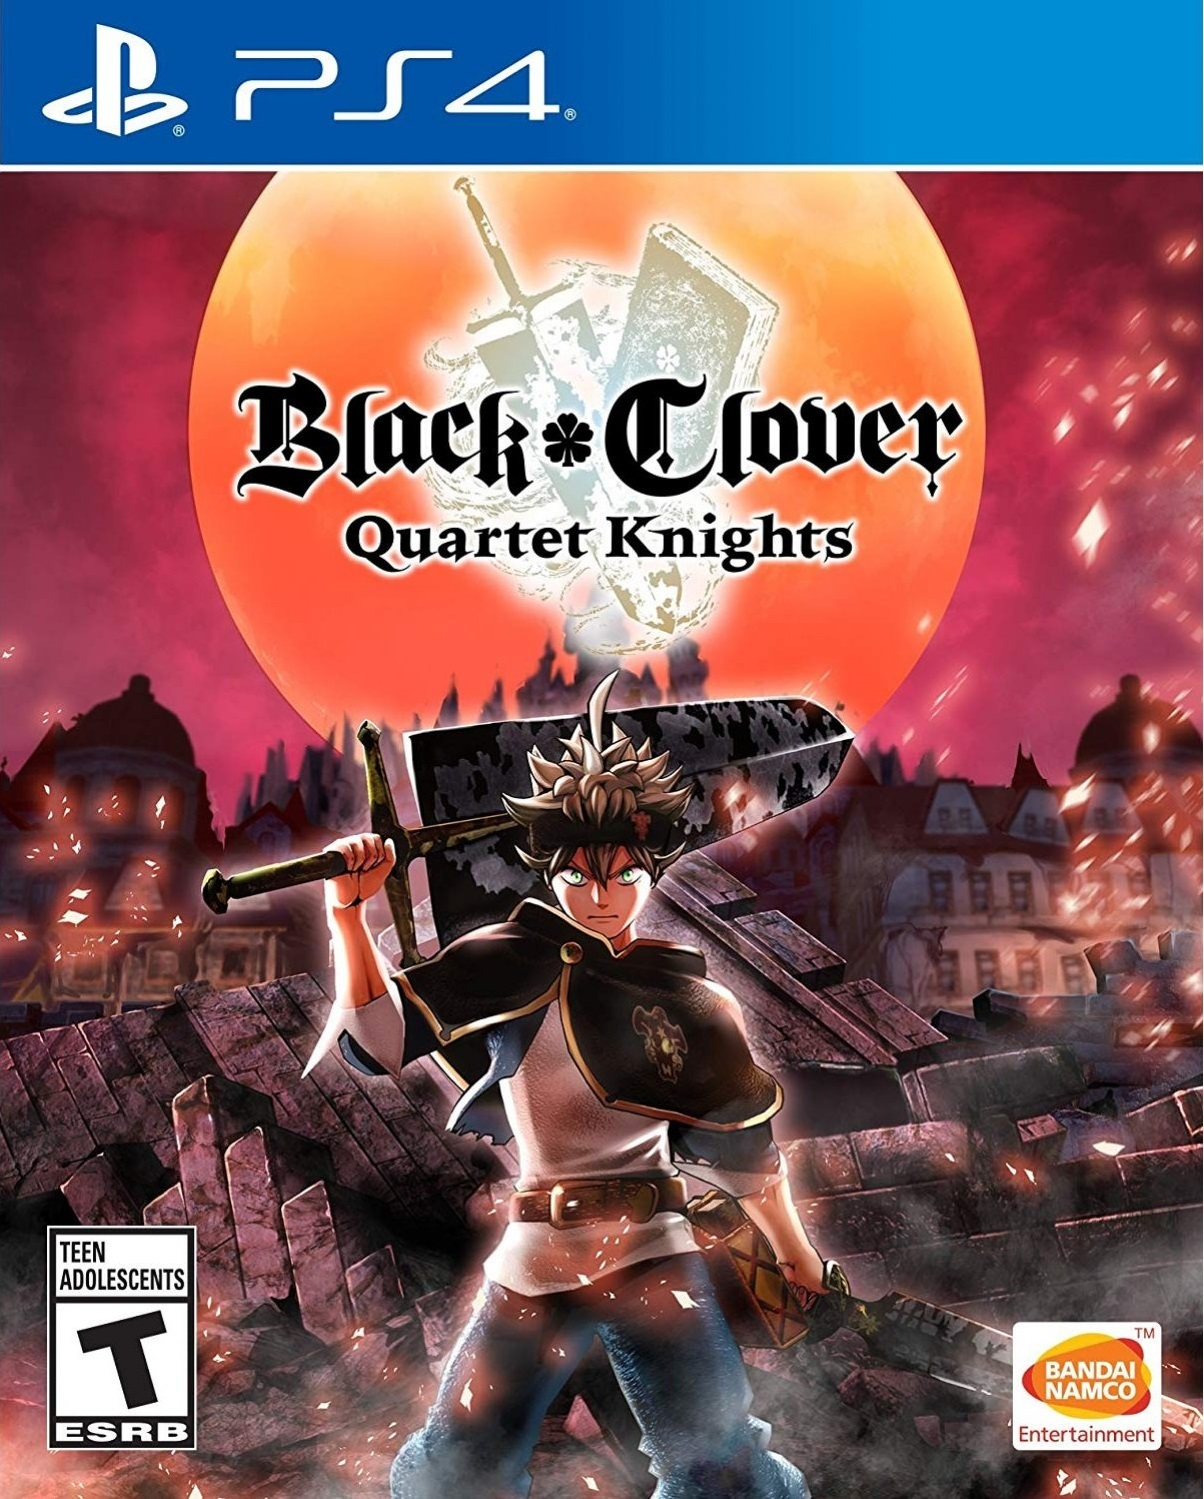 black-clover-quartet-knights-550015.32.jpg